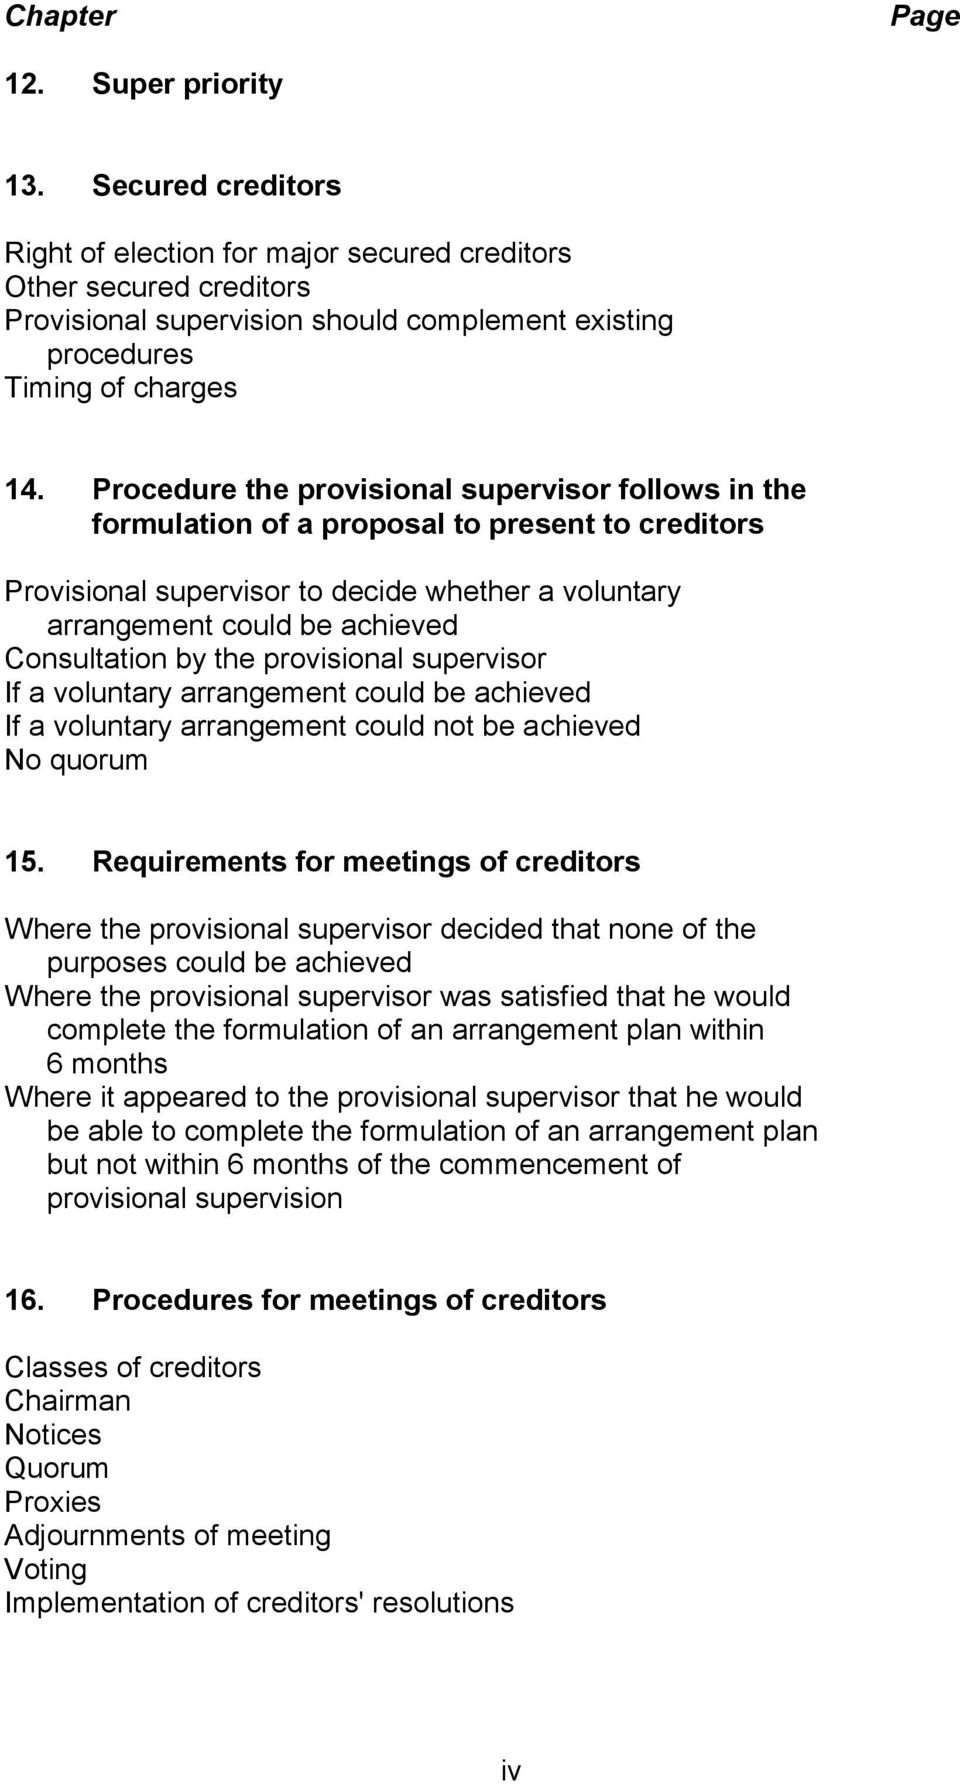 Procedure the provisional supervisor follows in the formulation of a proposal to present to creditors Provisional supervisor to decide whether a voluntary arrangement could be achieved Consultation